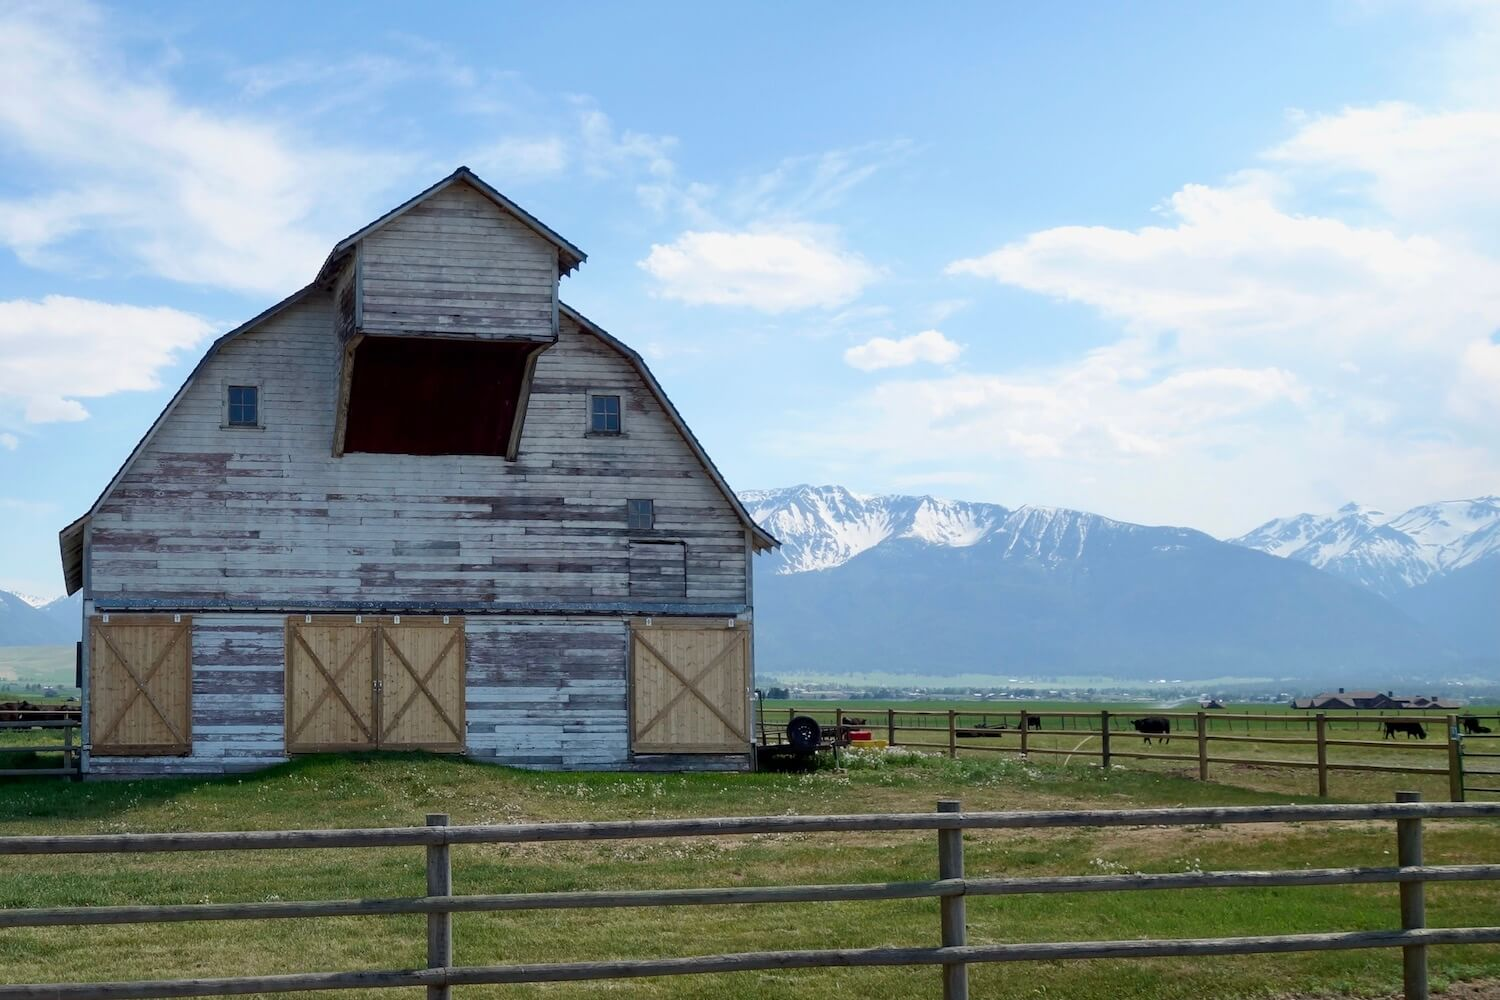 A barn near Joseph, Oregon sits on green grassland just in front of the Wallowa Mountains in Eastern Oregon. There are cattle grazing and wood posts create the fencing.